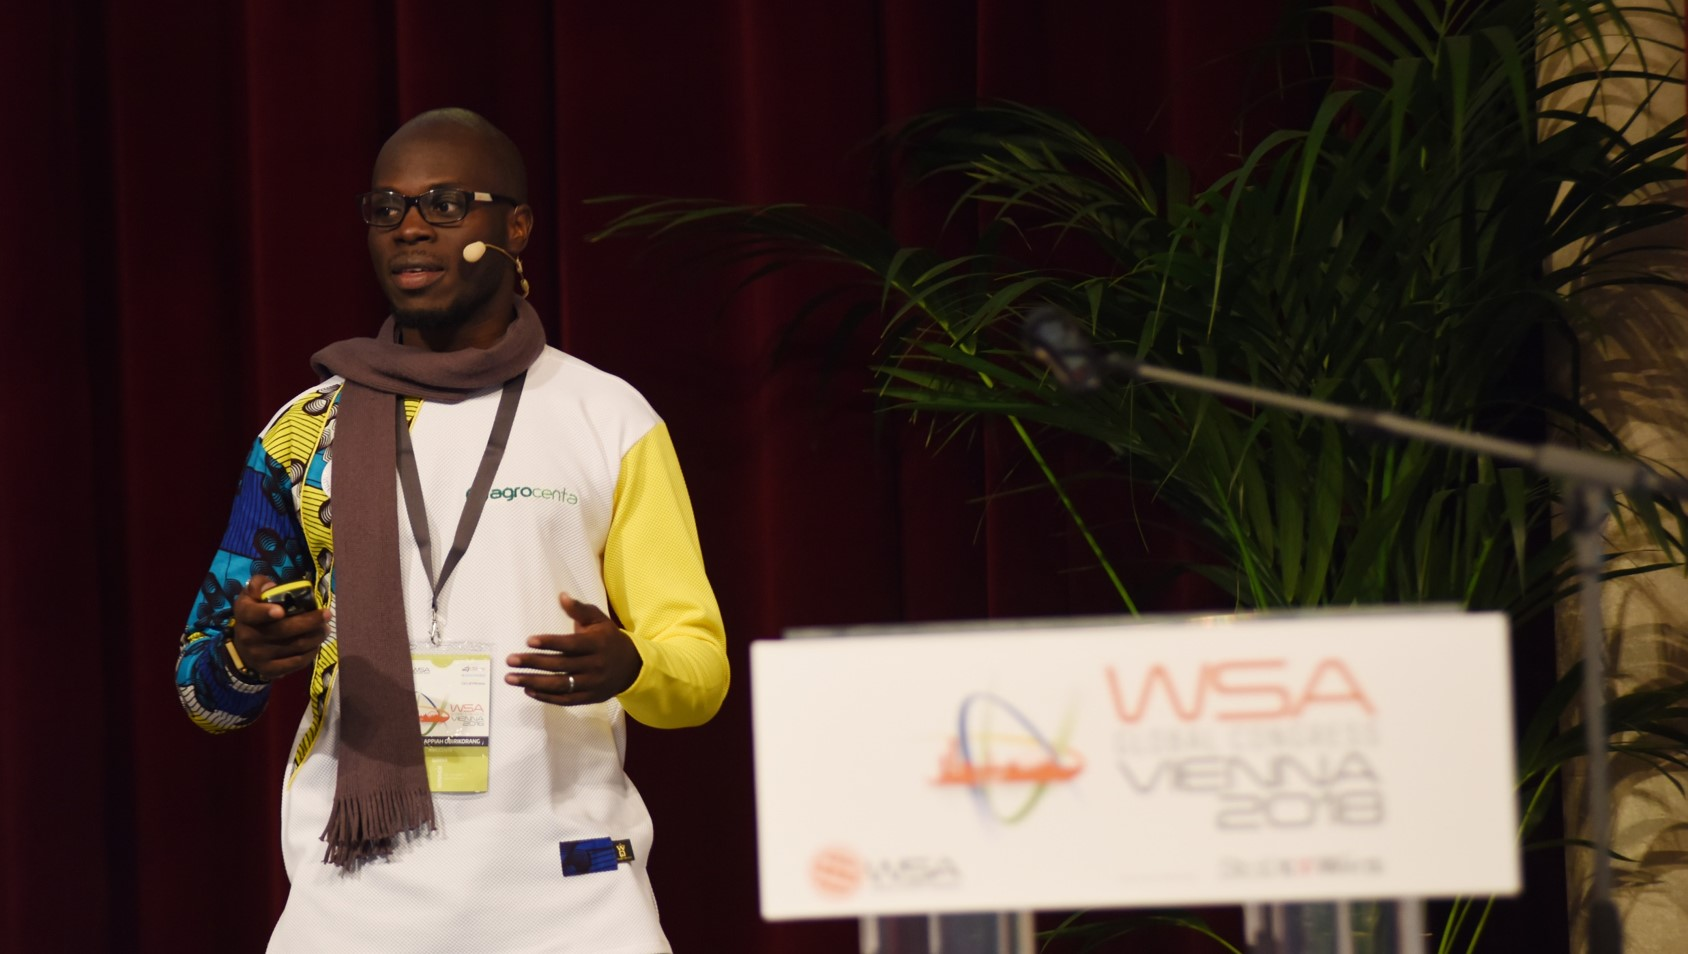 WSA SUCCSESS STORIES:  WSA WINNER CLOSES $650K SEED ROUND OF FUNDING